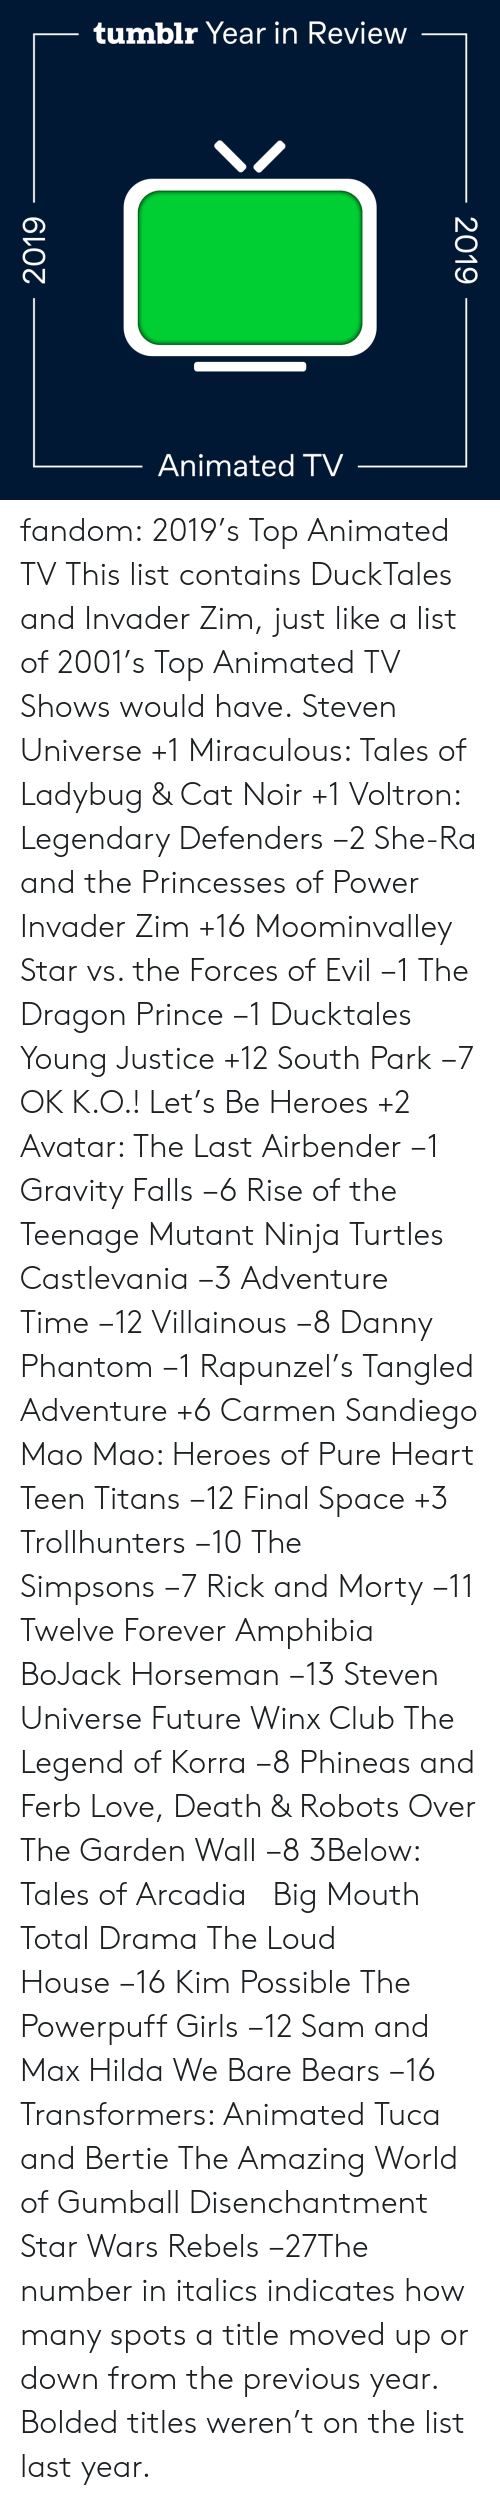 total: tumblr Year in Review  Animated TV  2019  2019 fandom:  2019's Top Animated TV  This list contains DuckTales and Invader Zim, just like a list of 2001's Top Animated TV Shows would have.  Steven Universe +1  Miraculous: Tales of Ladybug & Cat Noir +1  Voltron: Legendary Defenders −2  She-Ra and the Princesses of Power   Invader Zim +16  Moominvalley  Star vs. the Forces of Evil −1  The Dragon Prince −1  Ducktales  Young Justice +12  South Park −7  OK K.O.! Let's Be Heroes +2  Avatar: The Last Airbender −1  Gravity Falls −6  Rise of the Teenage Mutant Ninja Turtles  Castlevania −3  Adventure Time −12  Villainous −8  Danny Phantom −1  Rapunzel's Tangled Adventure +6  Carmen Sandiego  Mao Mao: Heroes of Pure Heart  Teen Titans −12  Final Space +3  Trollhunters −10  The Simpsons −7  Rick and Morty −11  Twelve Forever  Amphibia  BoJack Horseman −13  Steven Universe Future  Winx Club  The Legend of Korra −8  Phineas and Ferb  Love, Death & Robots  Over The Garden Wall −8  3Below: Tales of Arcadia    Big Mouth  Total Drama  The Loud House −16  Kim Possible  The Powerpuff Girls −12  Sam and Max  Hilda  We Bare Bears −16  Transformers: Animated  Tuca and Bertie  The Amazing World of Gumball  Disenchantment Star Wars Rebels −27The number in italics indicates how many spots a title moved up or down from the previous year. Bolded titles weren't on the list last year.